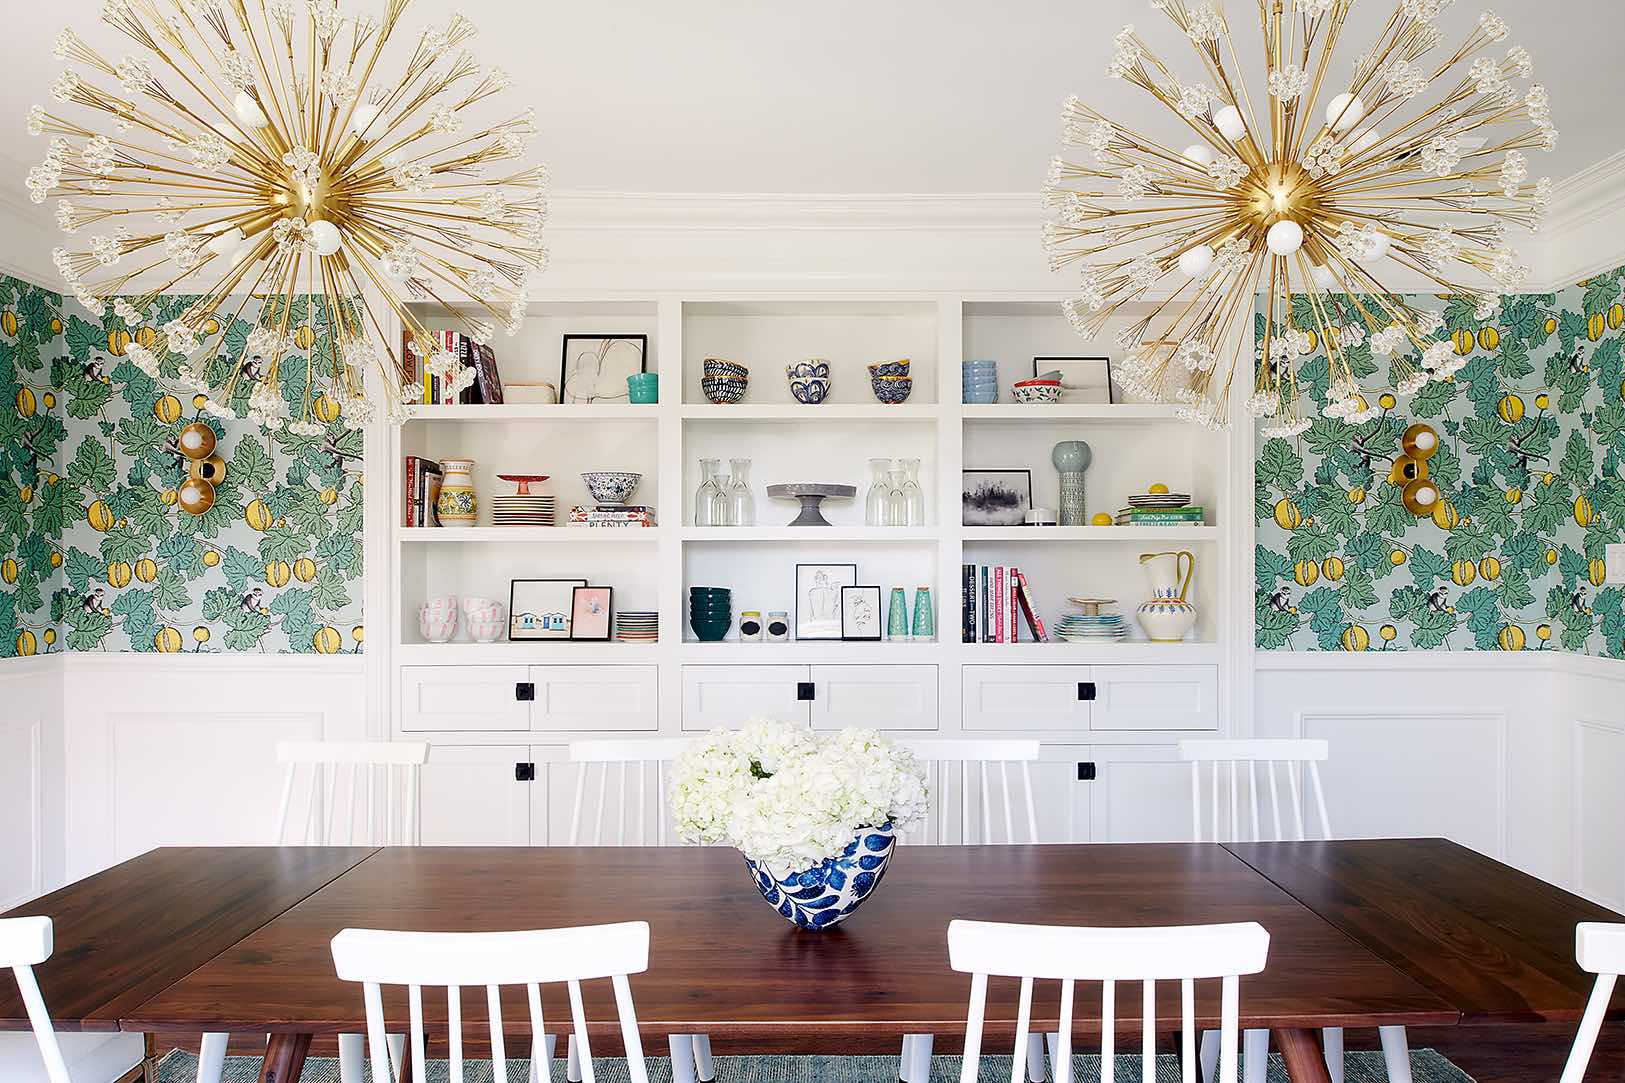 Bringing Personal Style to a Traditional Home | Design*Sponge